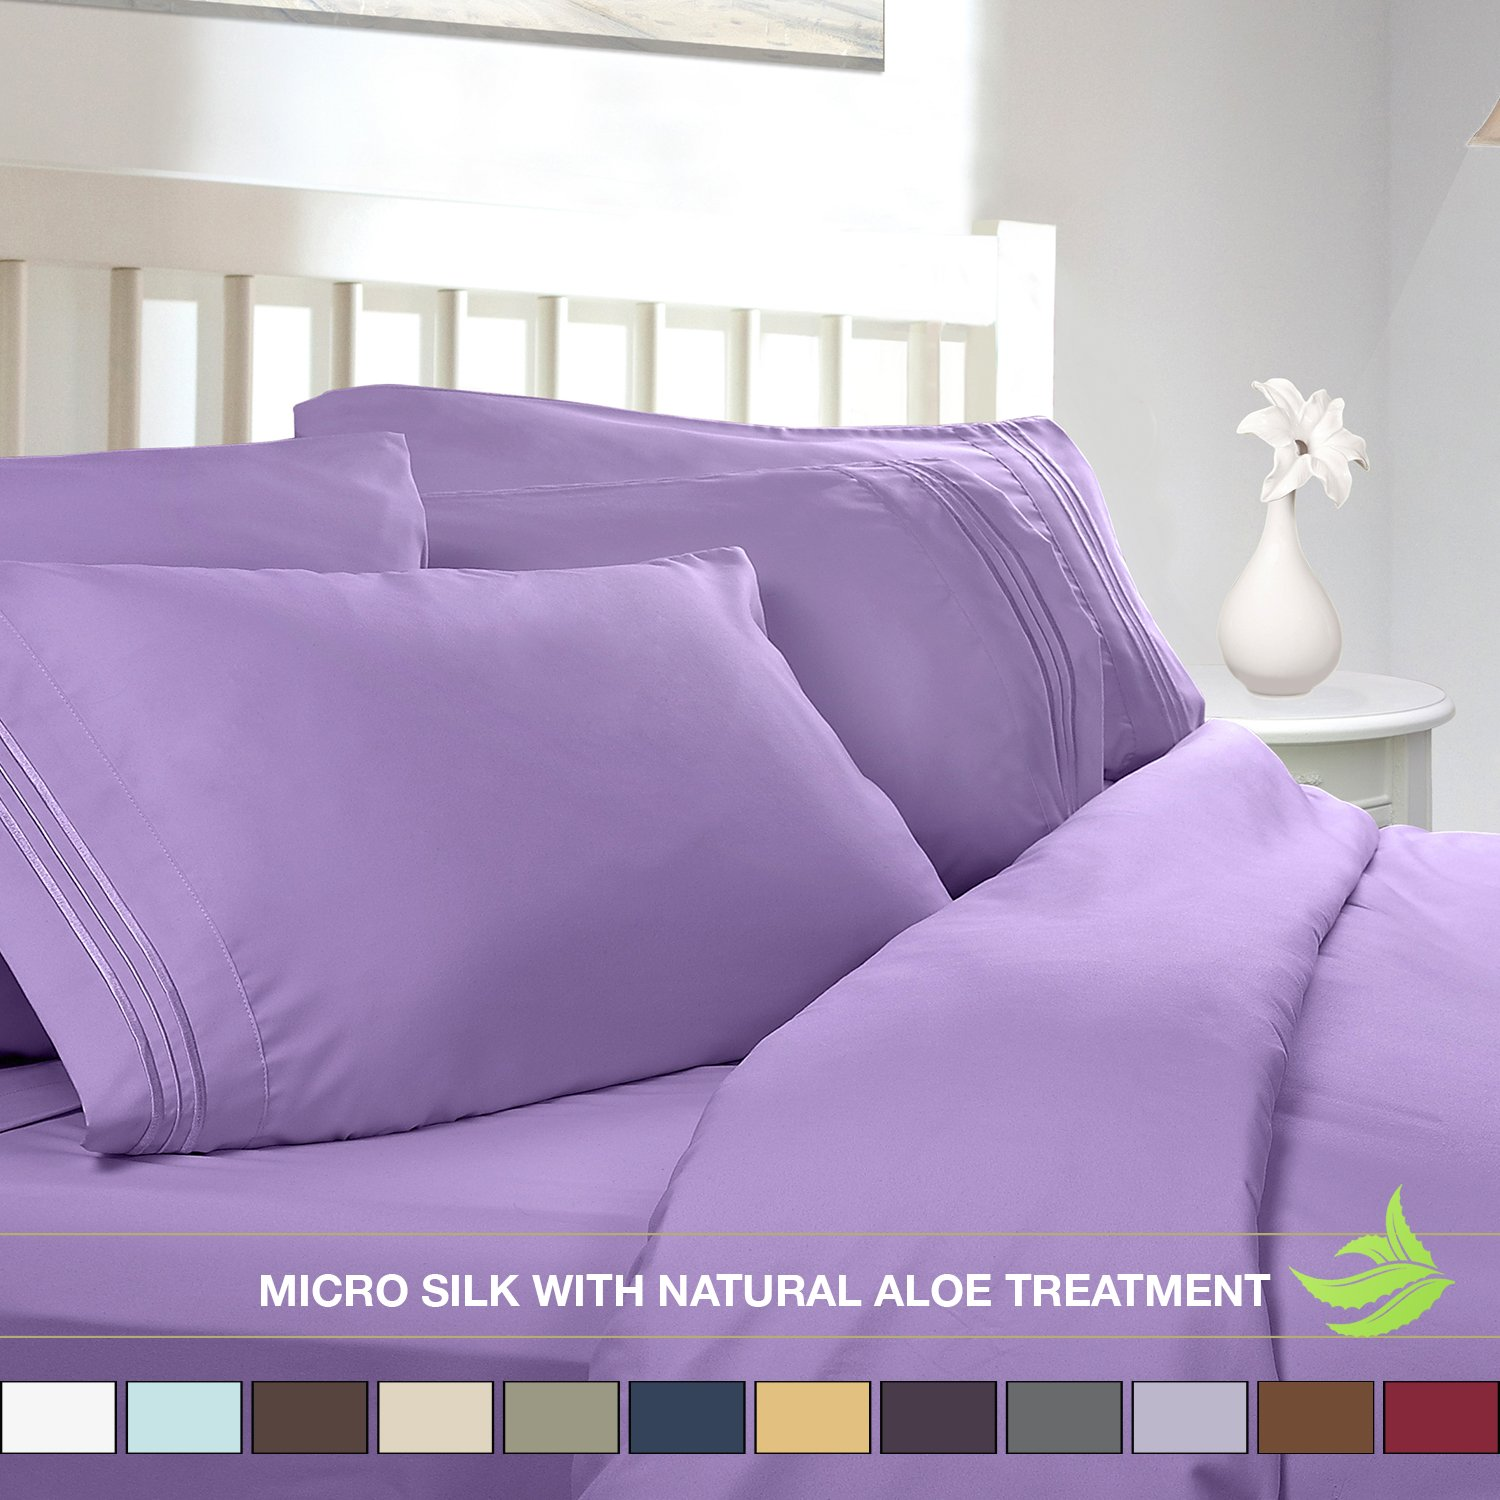 amazoncom luxury bed sheet set soft micro silk sheets queen size lilac lavender with pure natural aloe vera skin soothing treatment